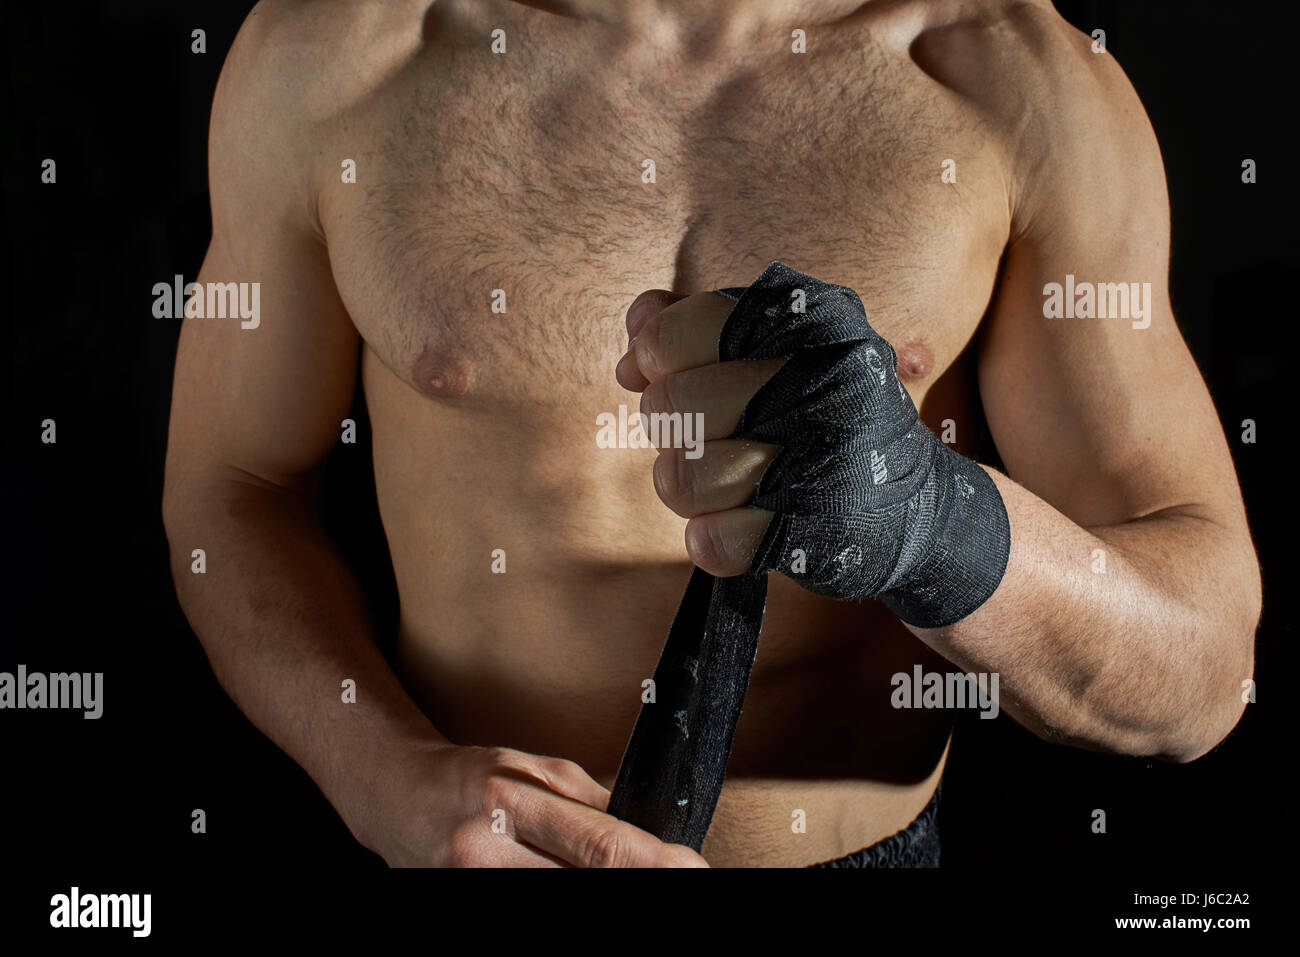 Closeup of a body combat athlet aplying tape on the hands. - Stock Image